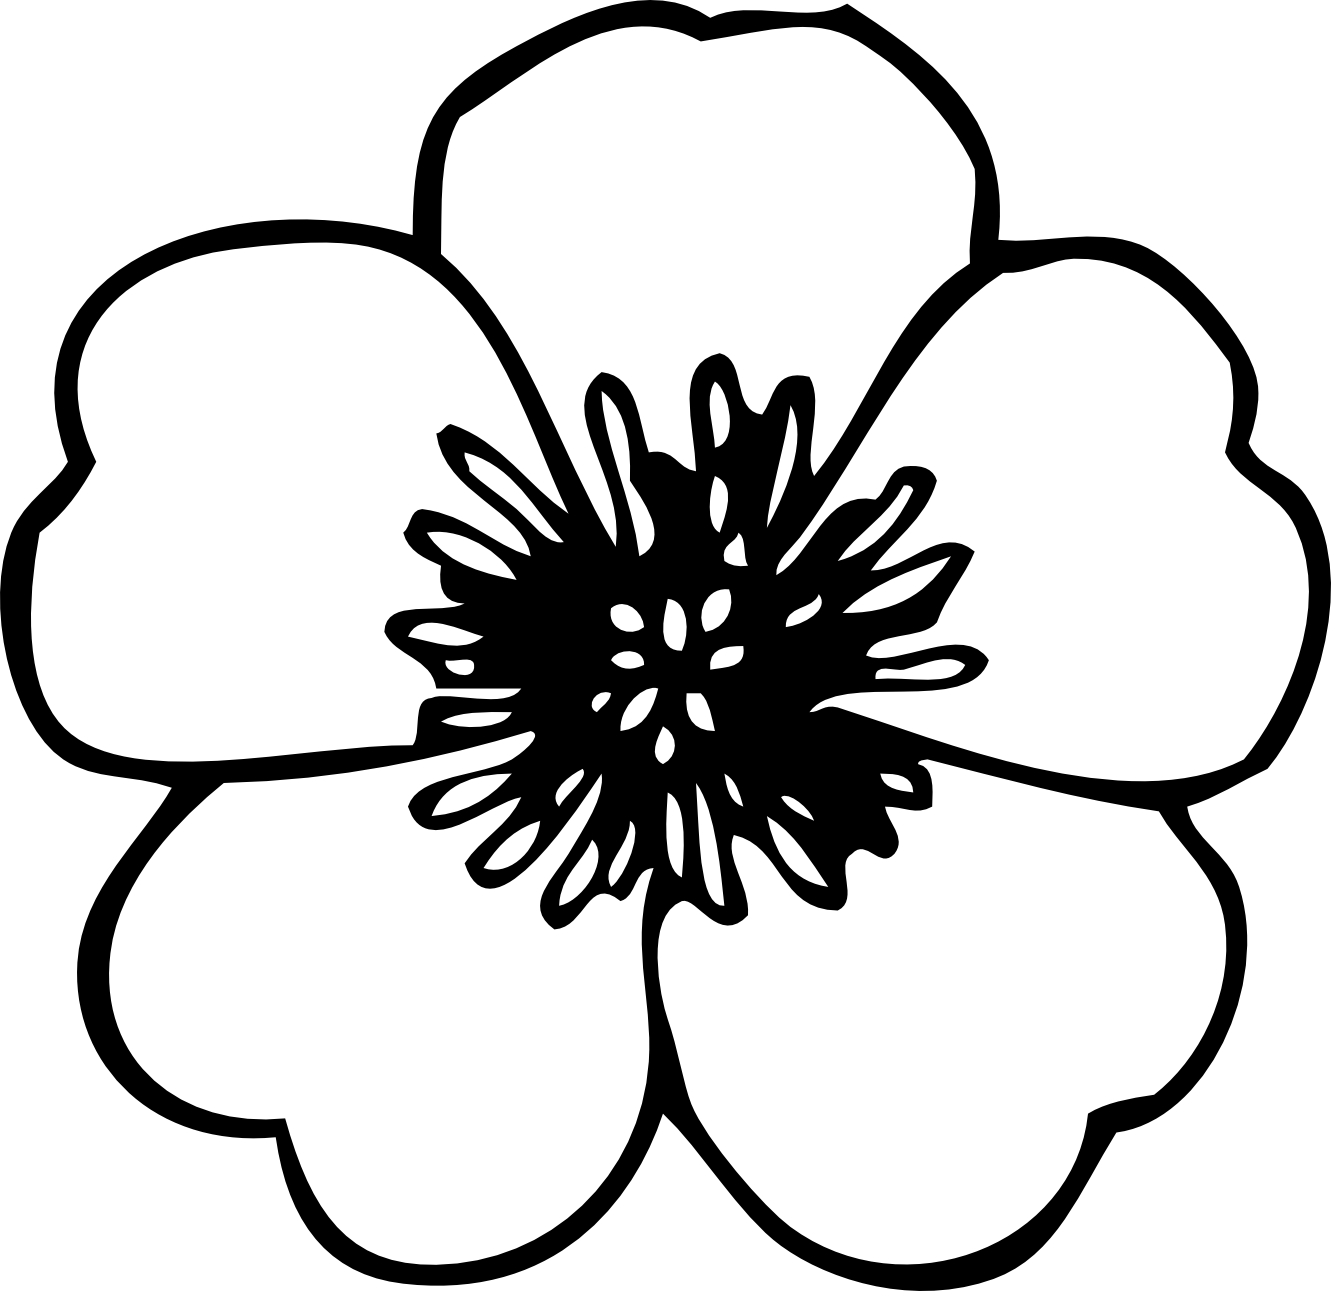 Flower Clipart Black And White #13537